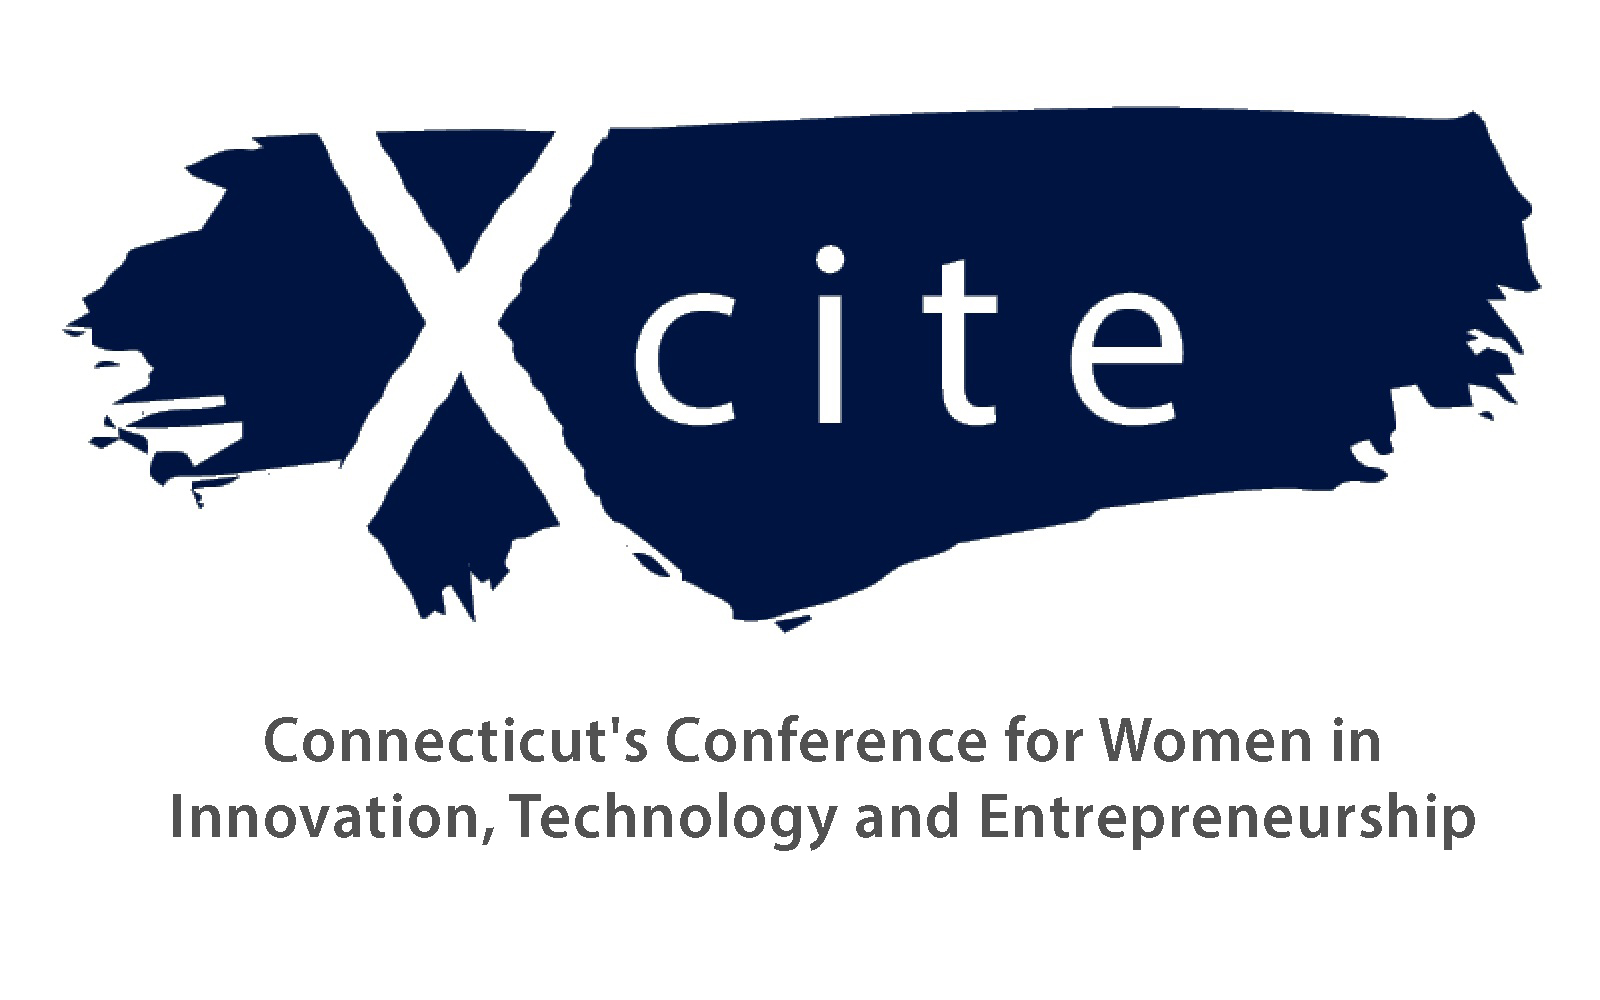 Xcite - Connecticut's Conference for Women in Innovation, Technology and Entrepreneurship